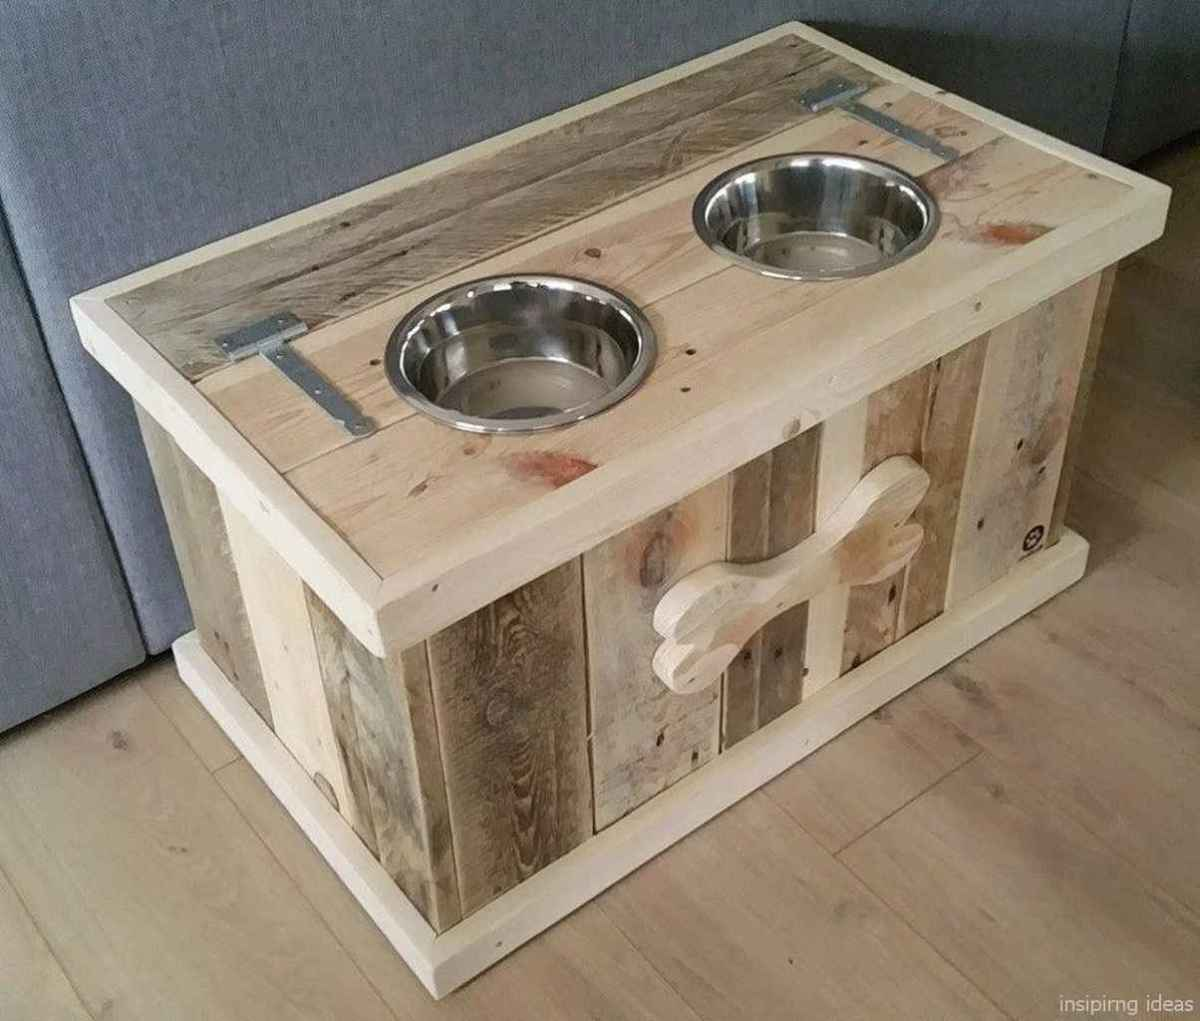 Affordable diy pallet project ideas56